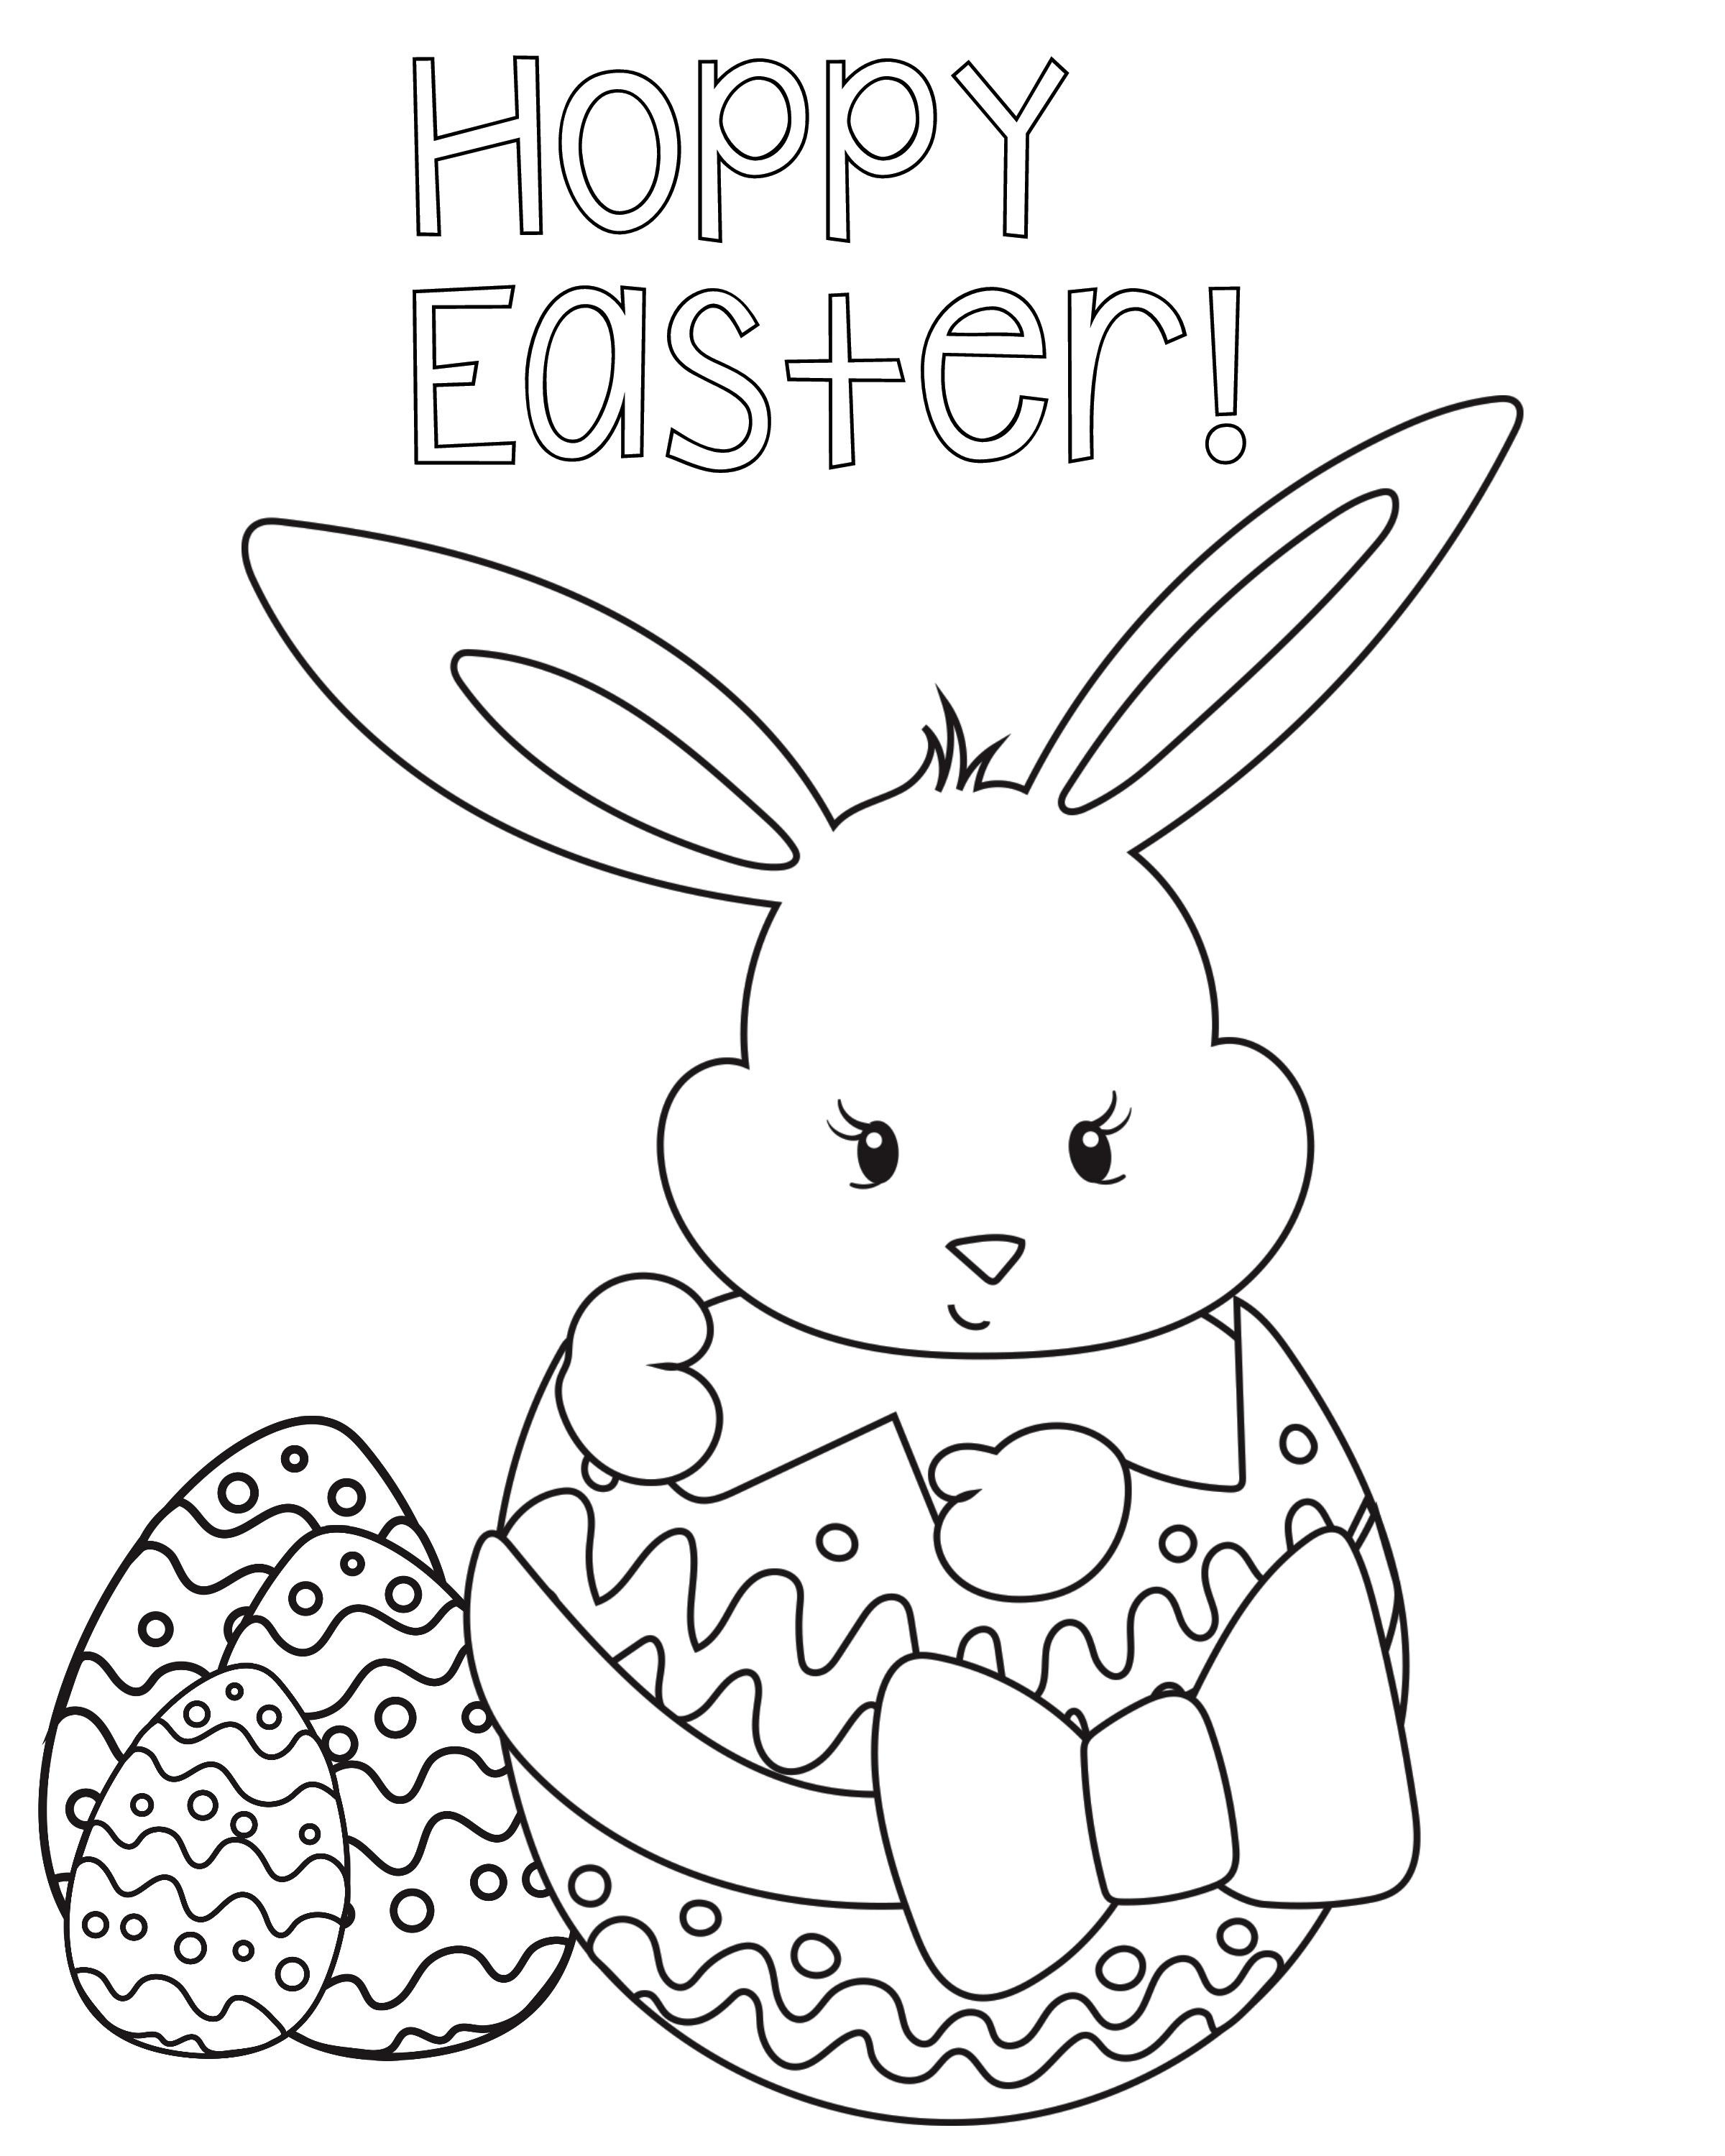 free printable coloring pages easter basket - happy easter coloring pages best coloring pages for kids